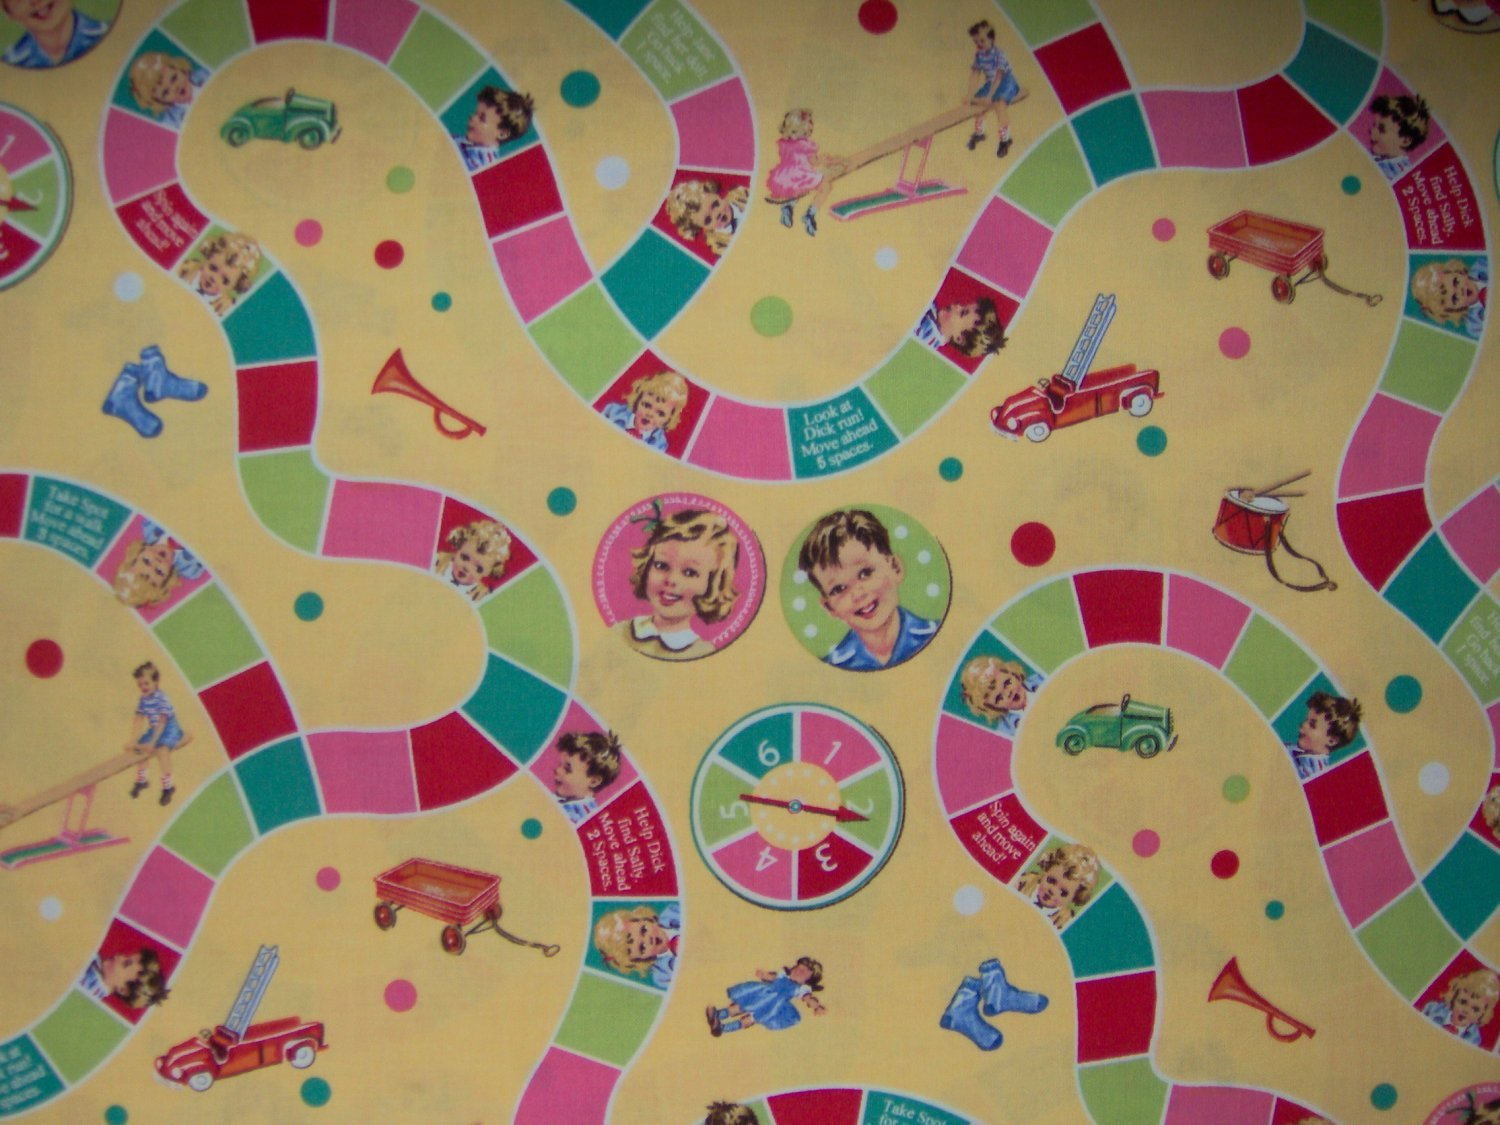 1.25+ Yds Dick & Jane Game Board Retro Kids Cotton Fabric by Michael Miller Bolt End